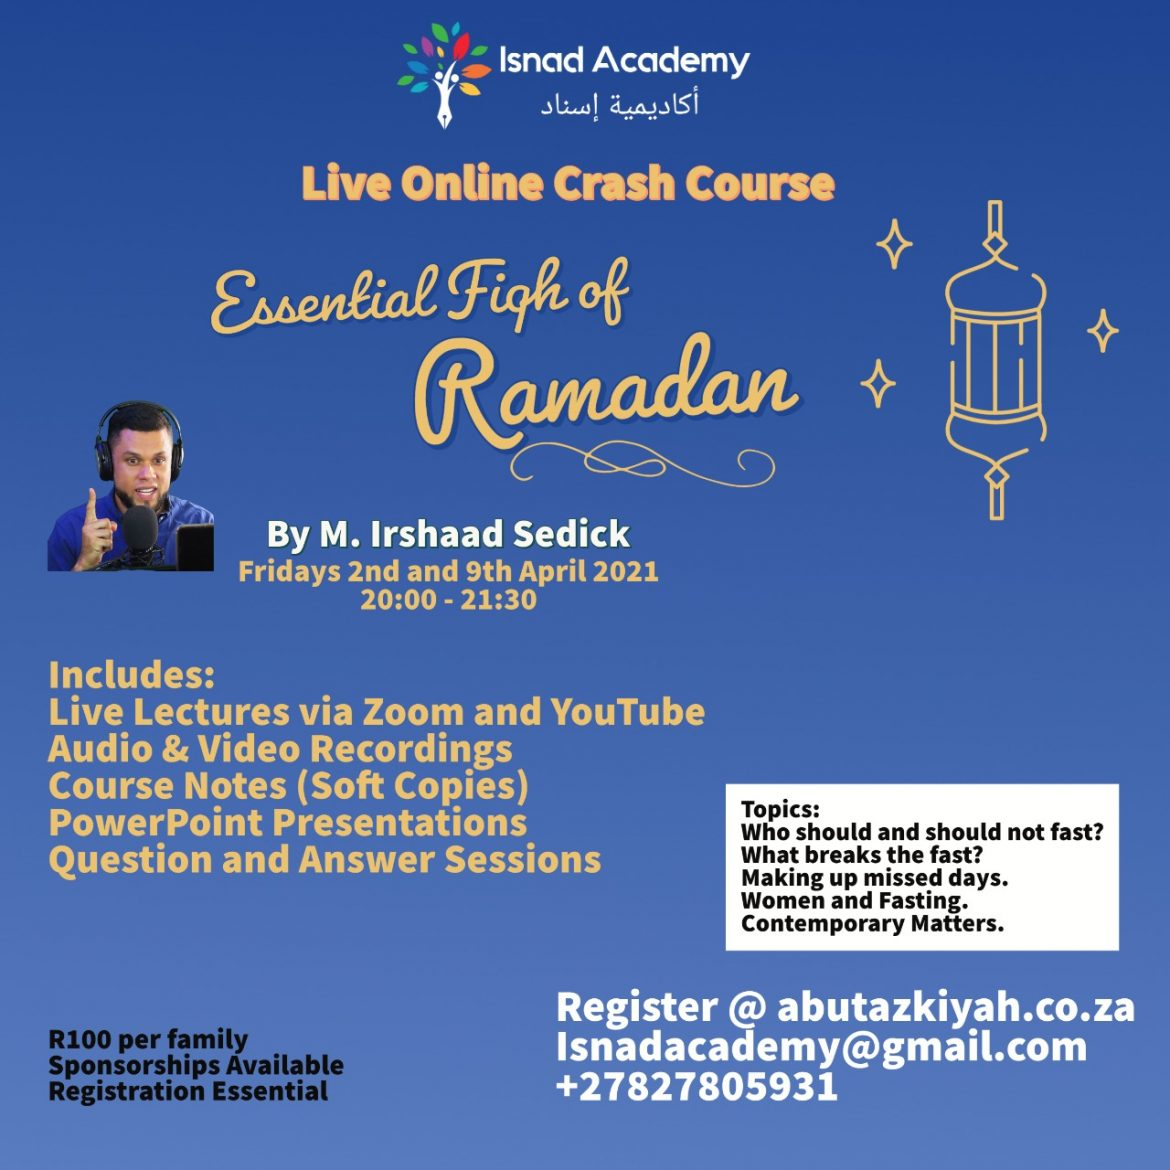 Essential Fiqh of Ramadan Crash Course by the Isnad Academy